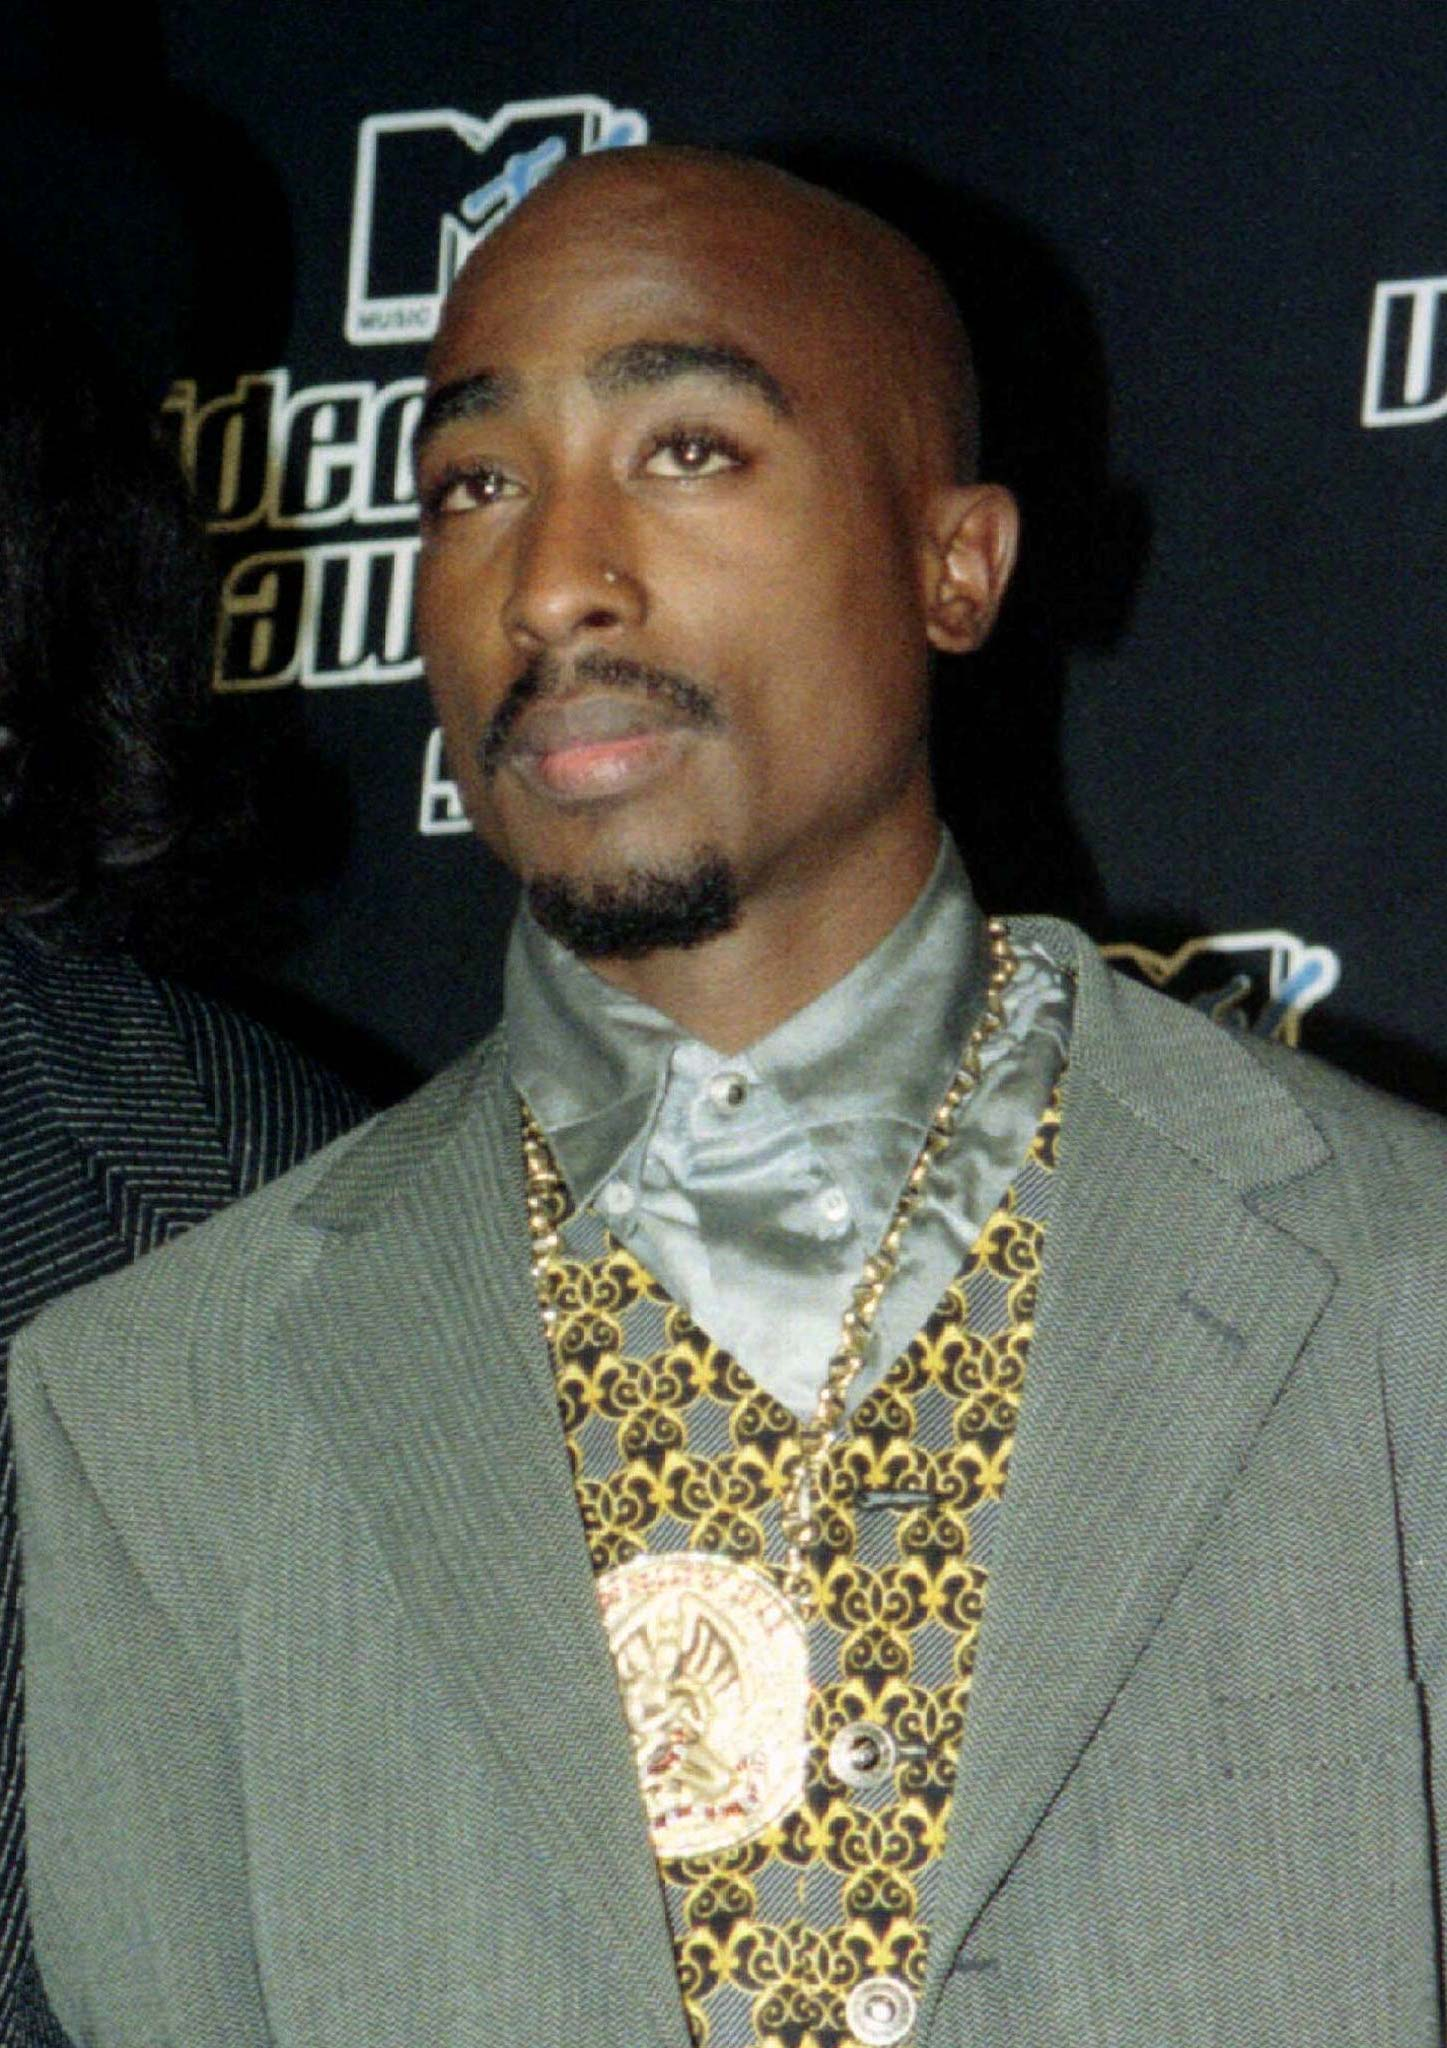 Where Did The Races Come From: Tupac Shakur Death: Biggest Conspiracy Theories Claiming